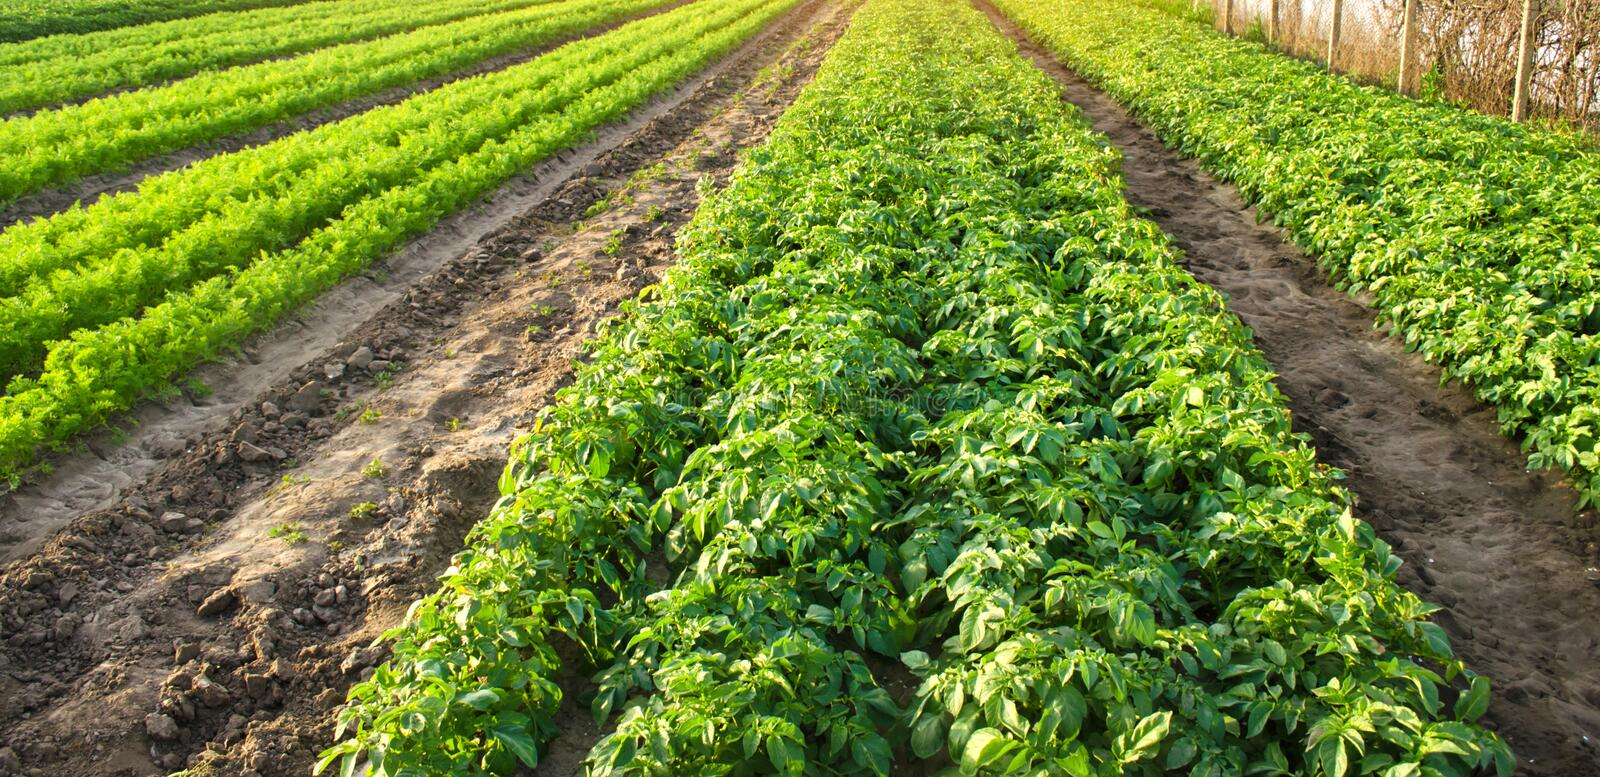 Agricultural landscape with vegetable plantations. Growing organic vegetables in the field. Farm agriculture. Potatoes and carrot. Farming. Selective focus royalty free stock image